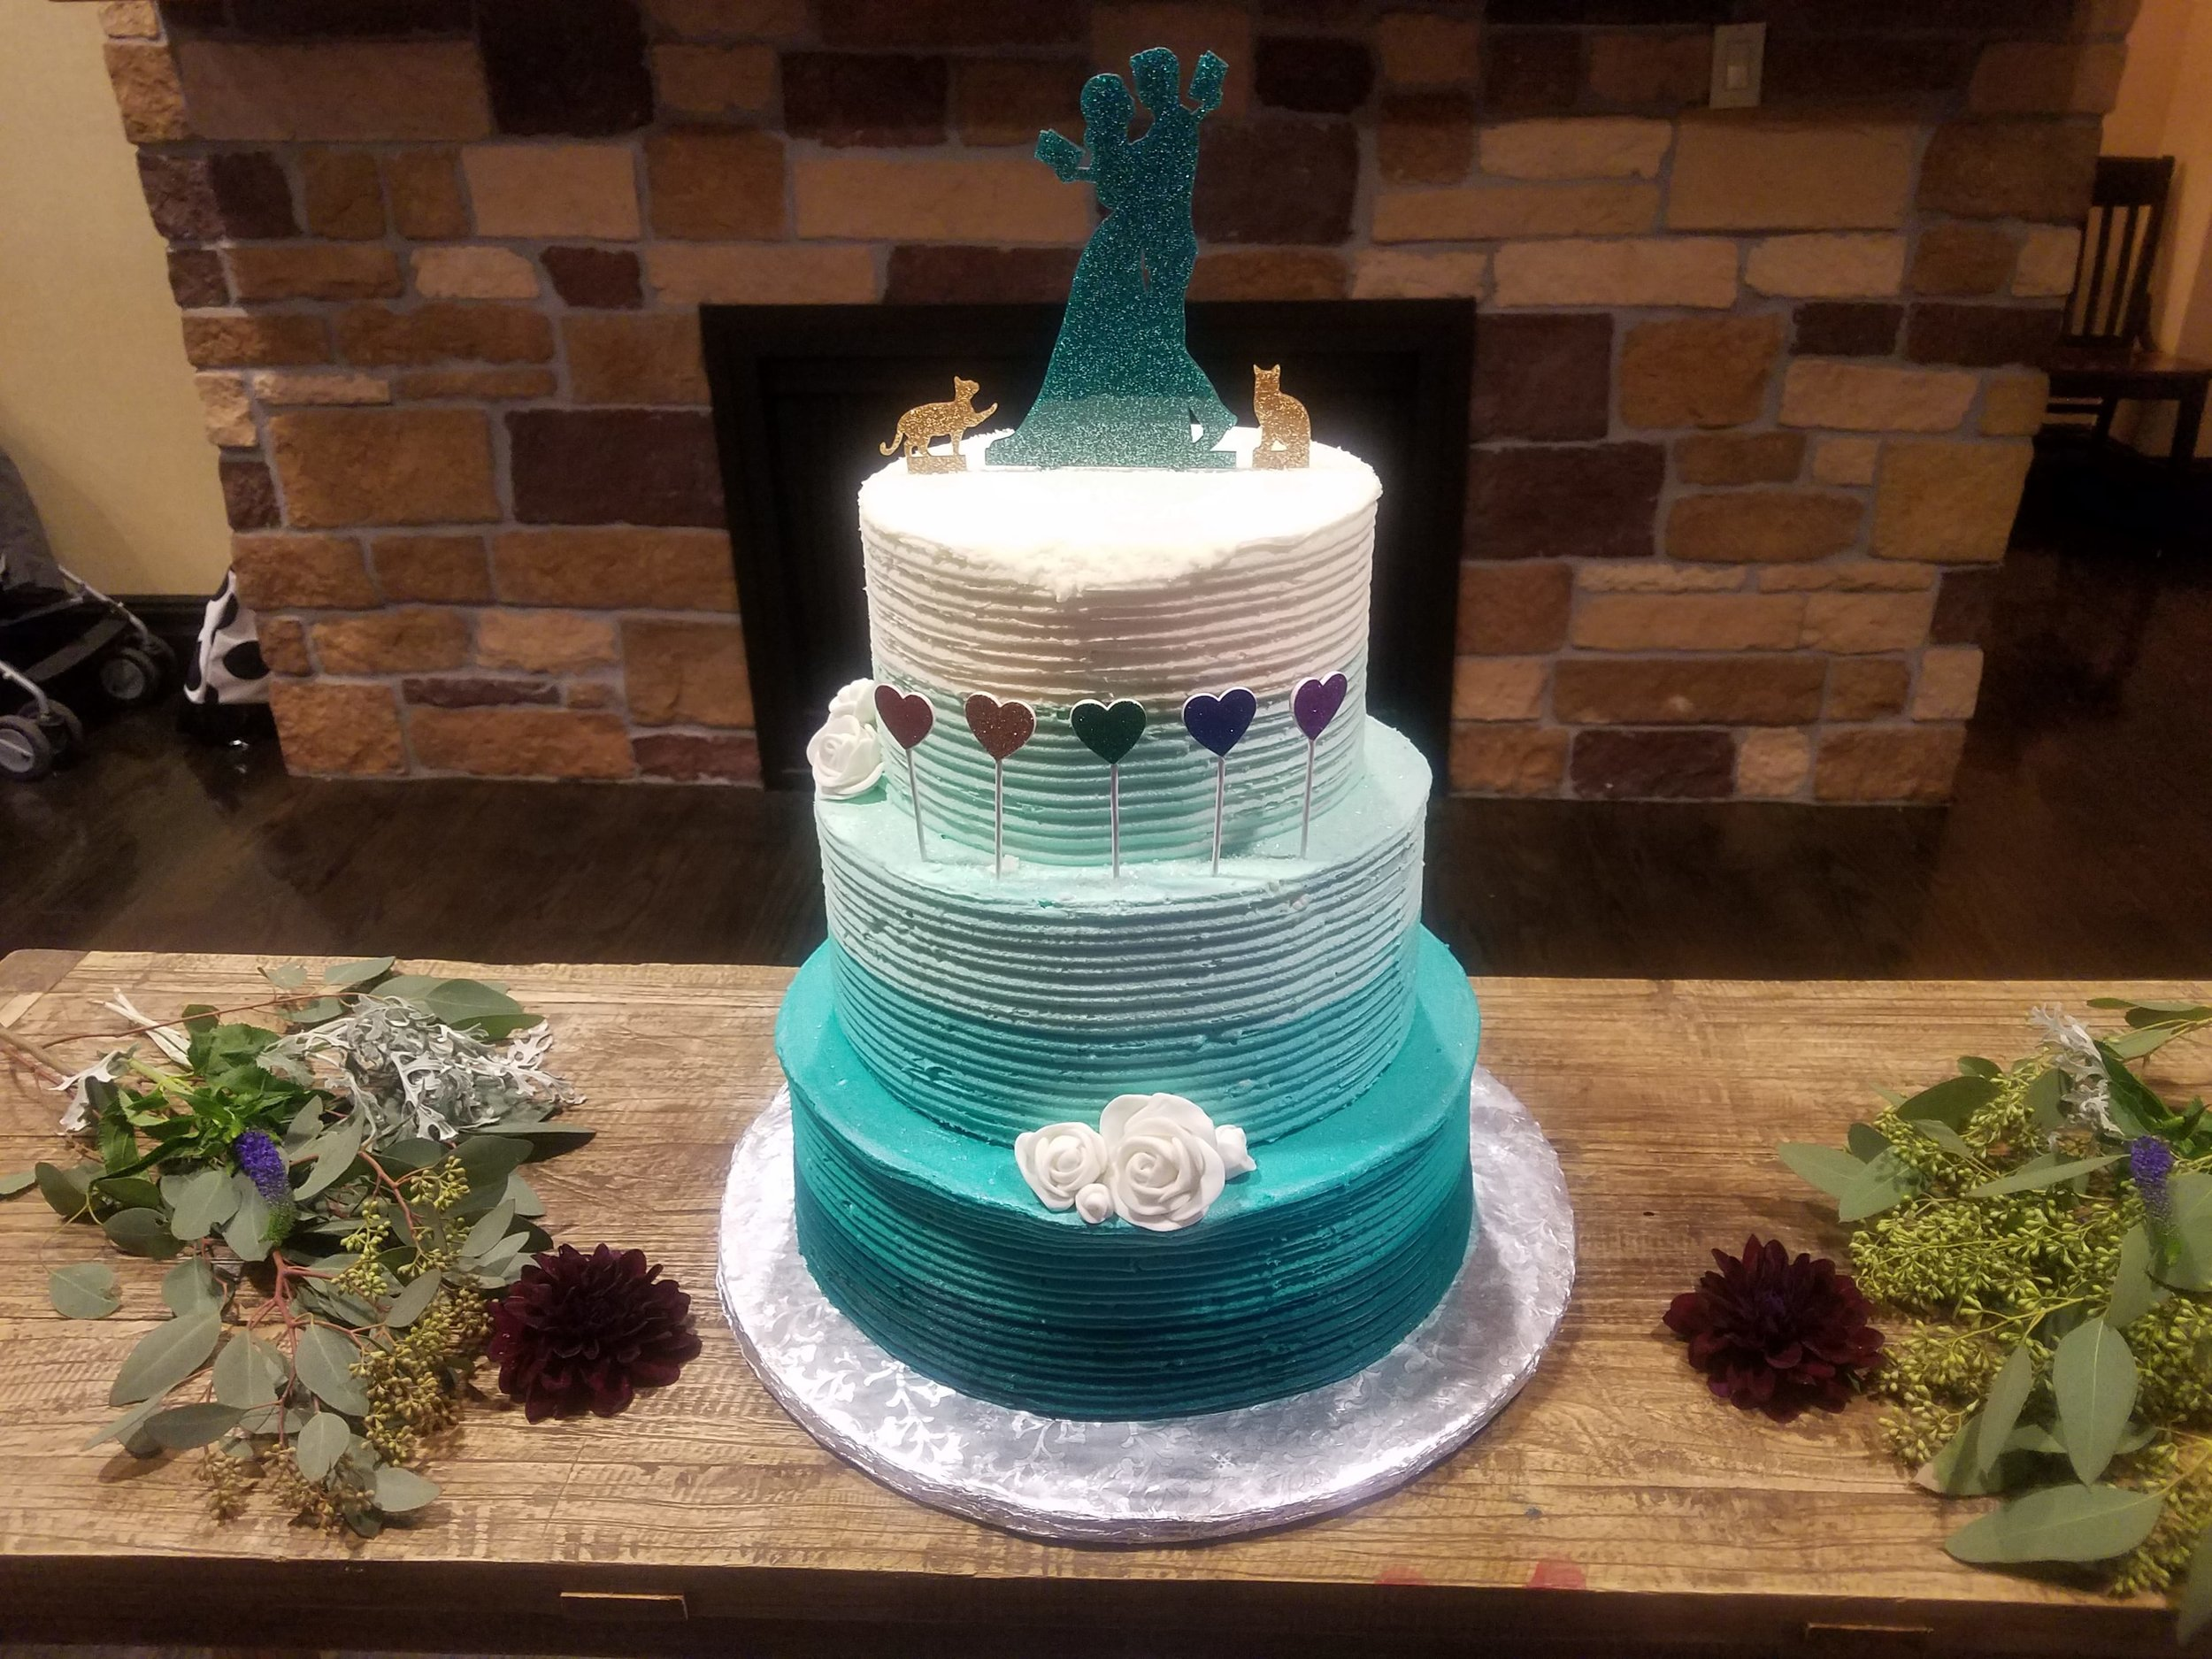 Ombre Cakes - A wedding I entertained at last year had a beautiful ombre cake with faded blues and greens. Ombre is the gradual blending of one color hue to another, usually moving tints and shades from light to dark.This is a great gender-neutral example for same-sex weddings. Check out other ombre cake ideas here.